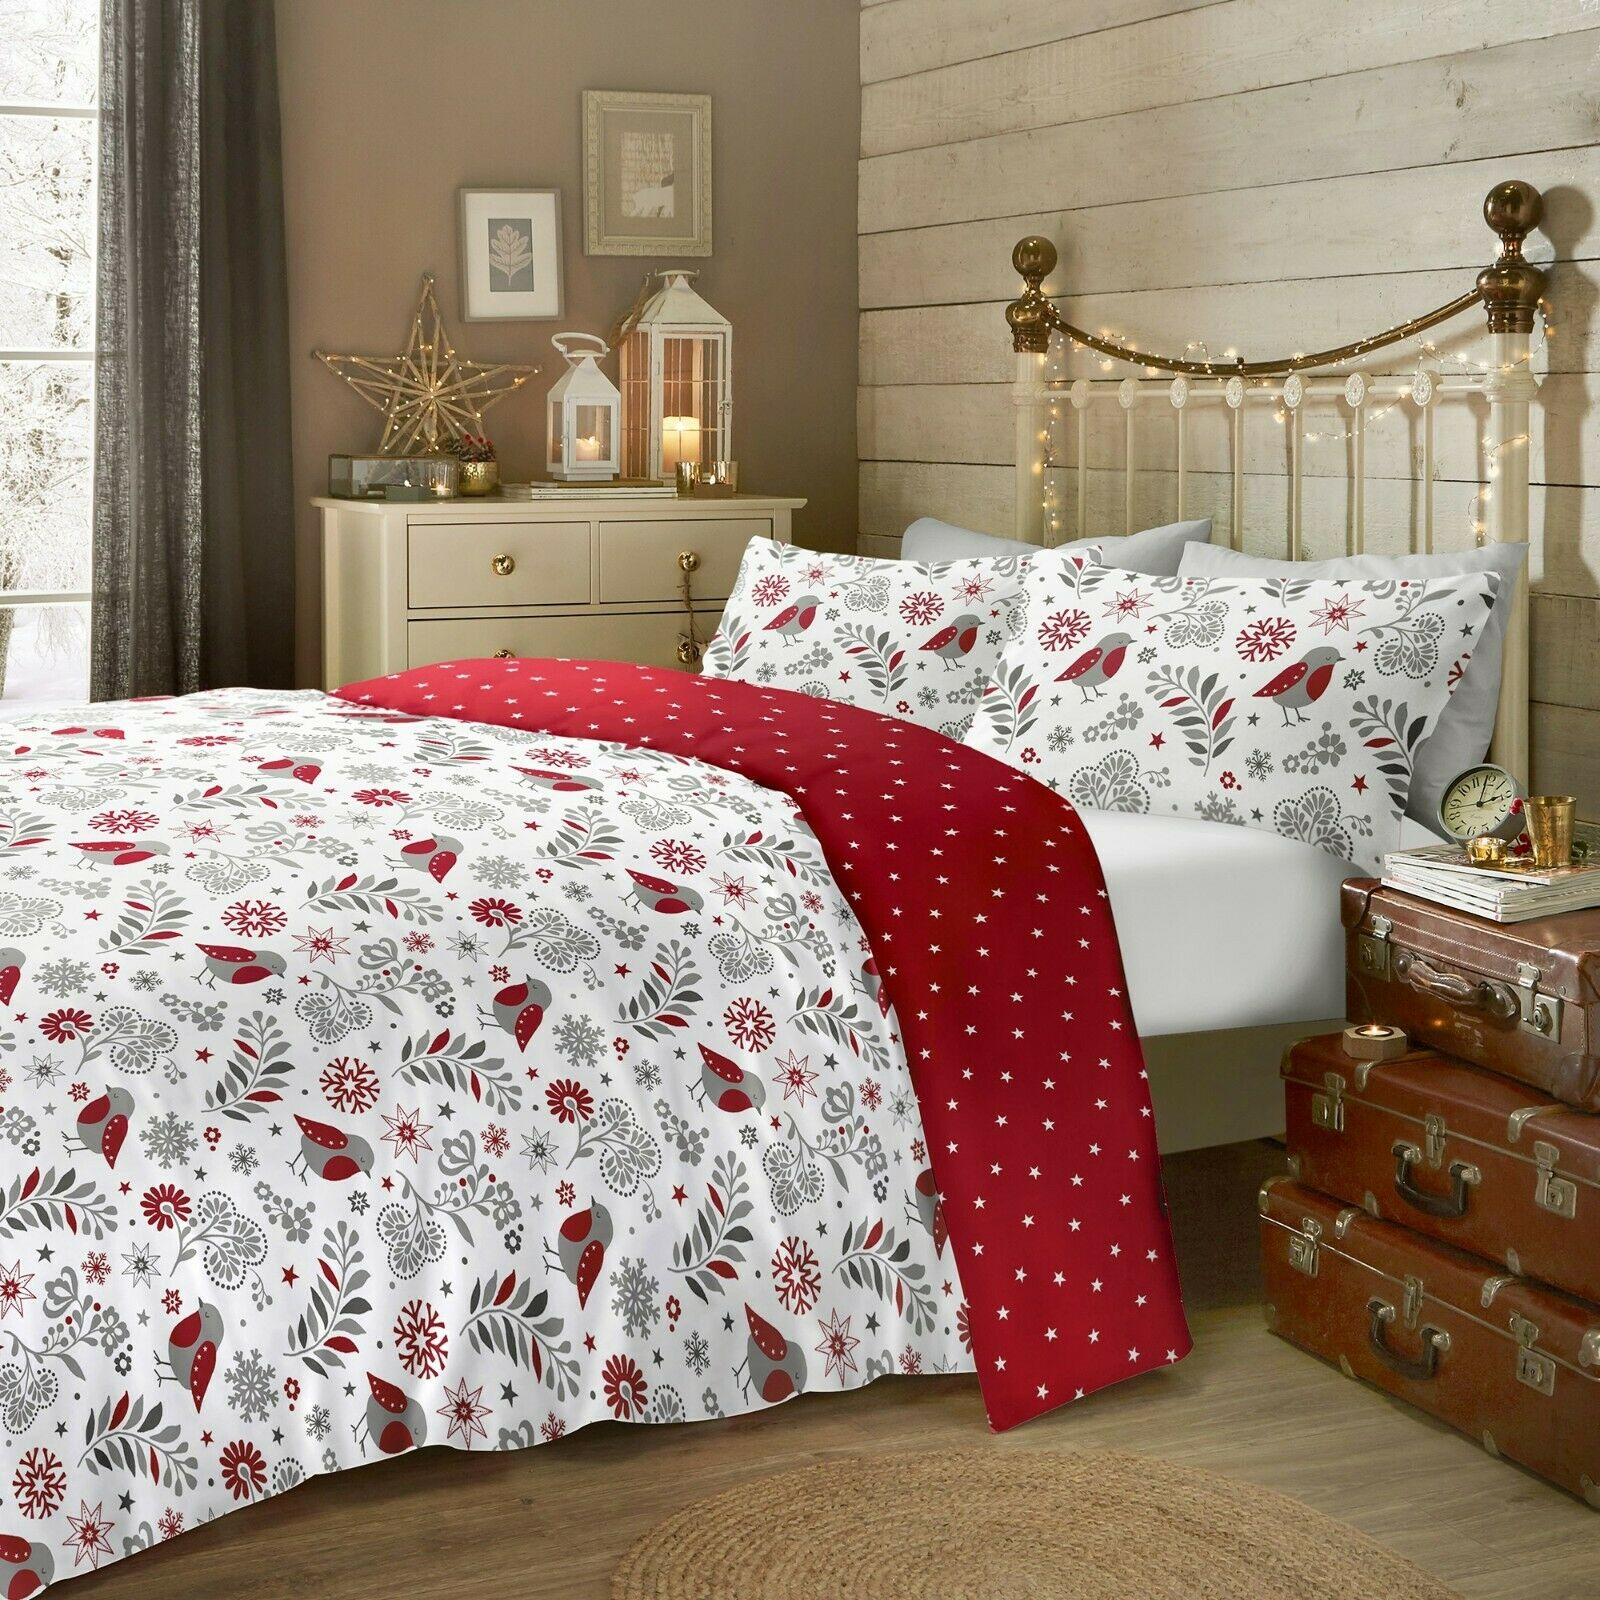 Home Furniture Diy Bedding Sets Duvet Covers Rapport Nordic Duvet Cover Sets Single Double King Red Bortexgroup Com